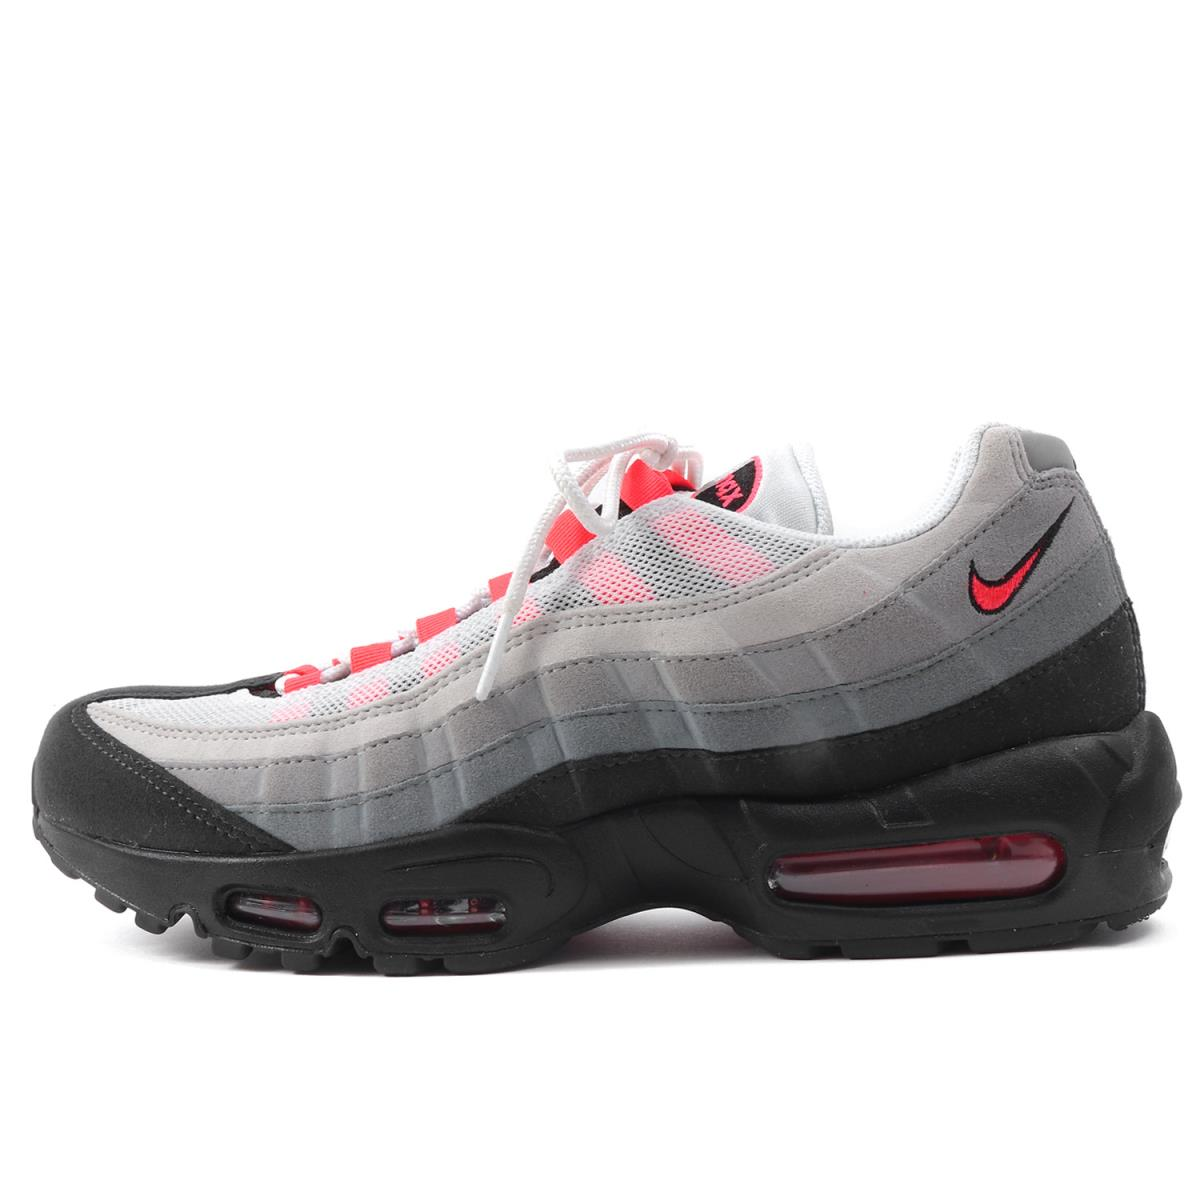 los angeles f1c11 e2081 NIKE (Nike) AIR MAX 95 SOLAR RED (/ 609,048-106 made in 2018) white X solar  red US9.5(27.5cm)